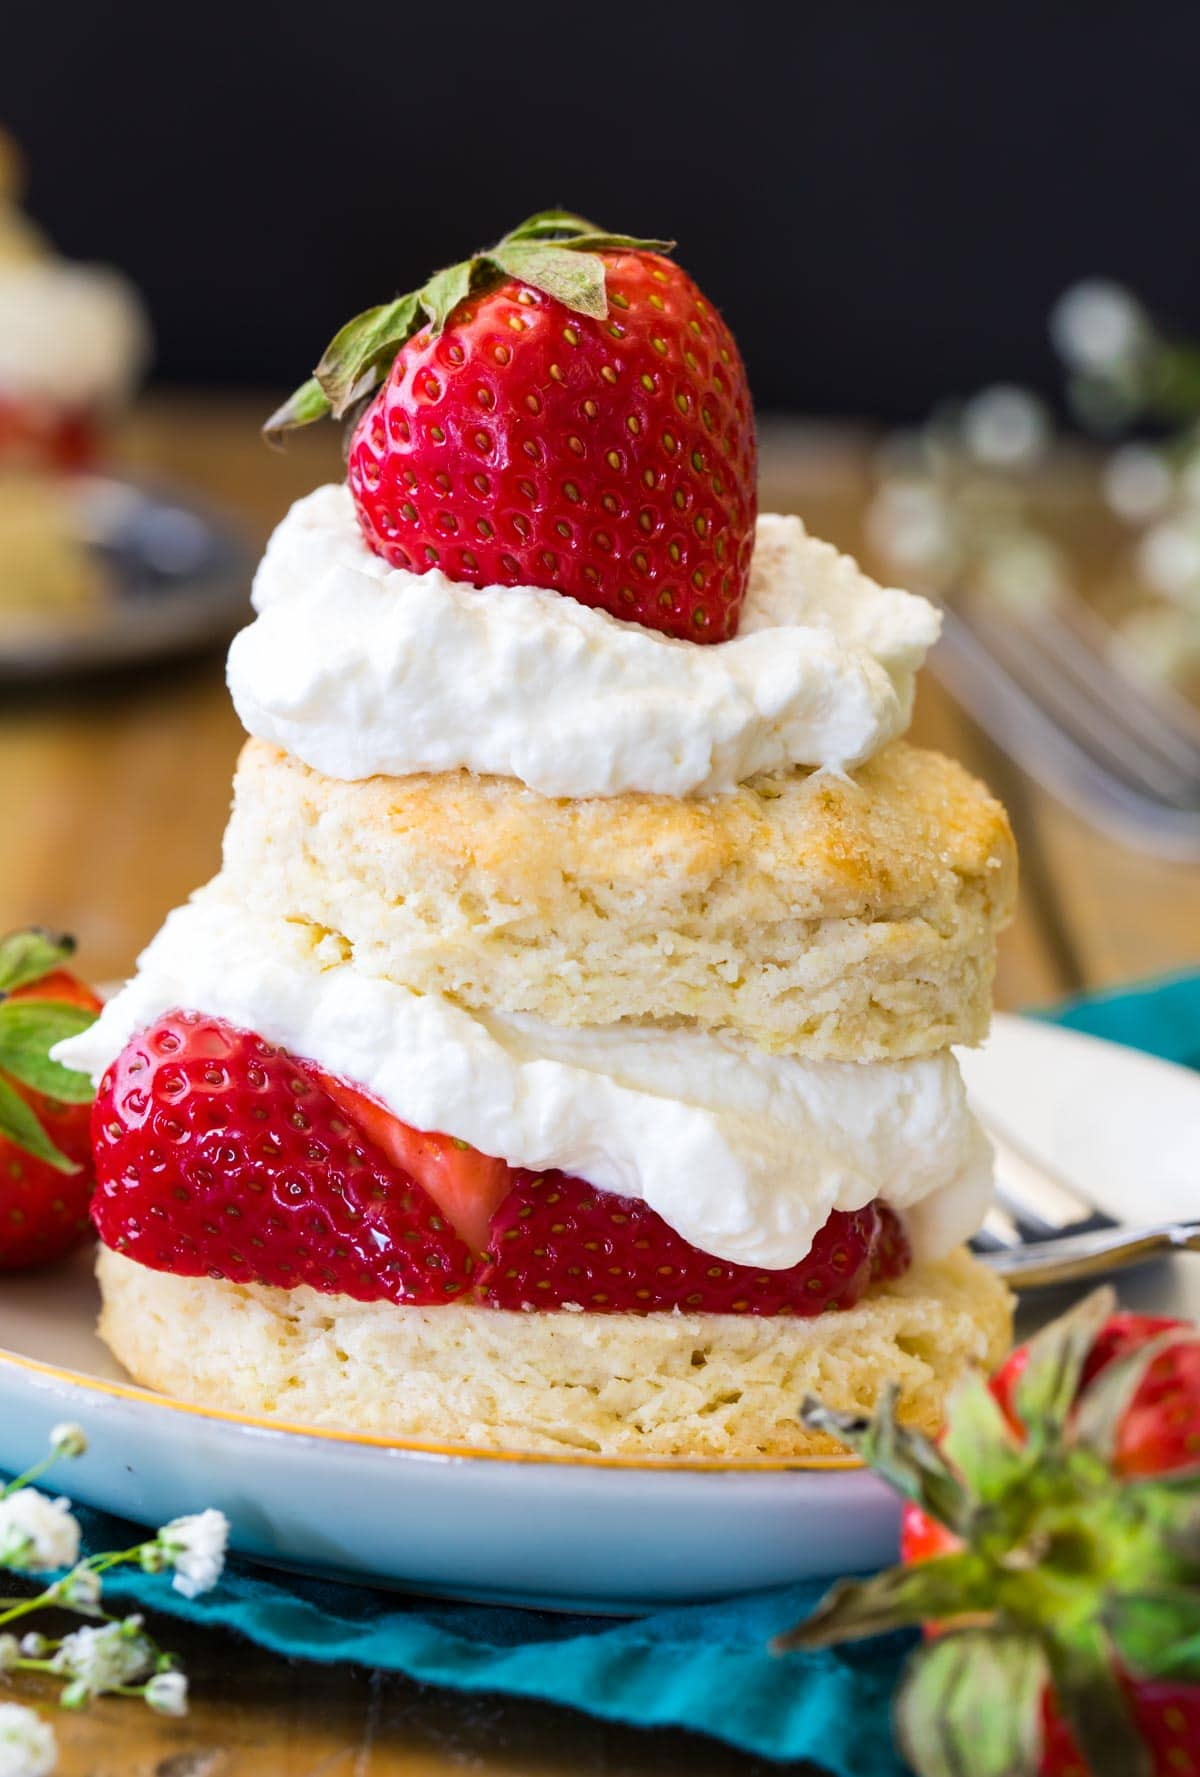 strawberry shortcake on white plate with black background